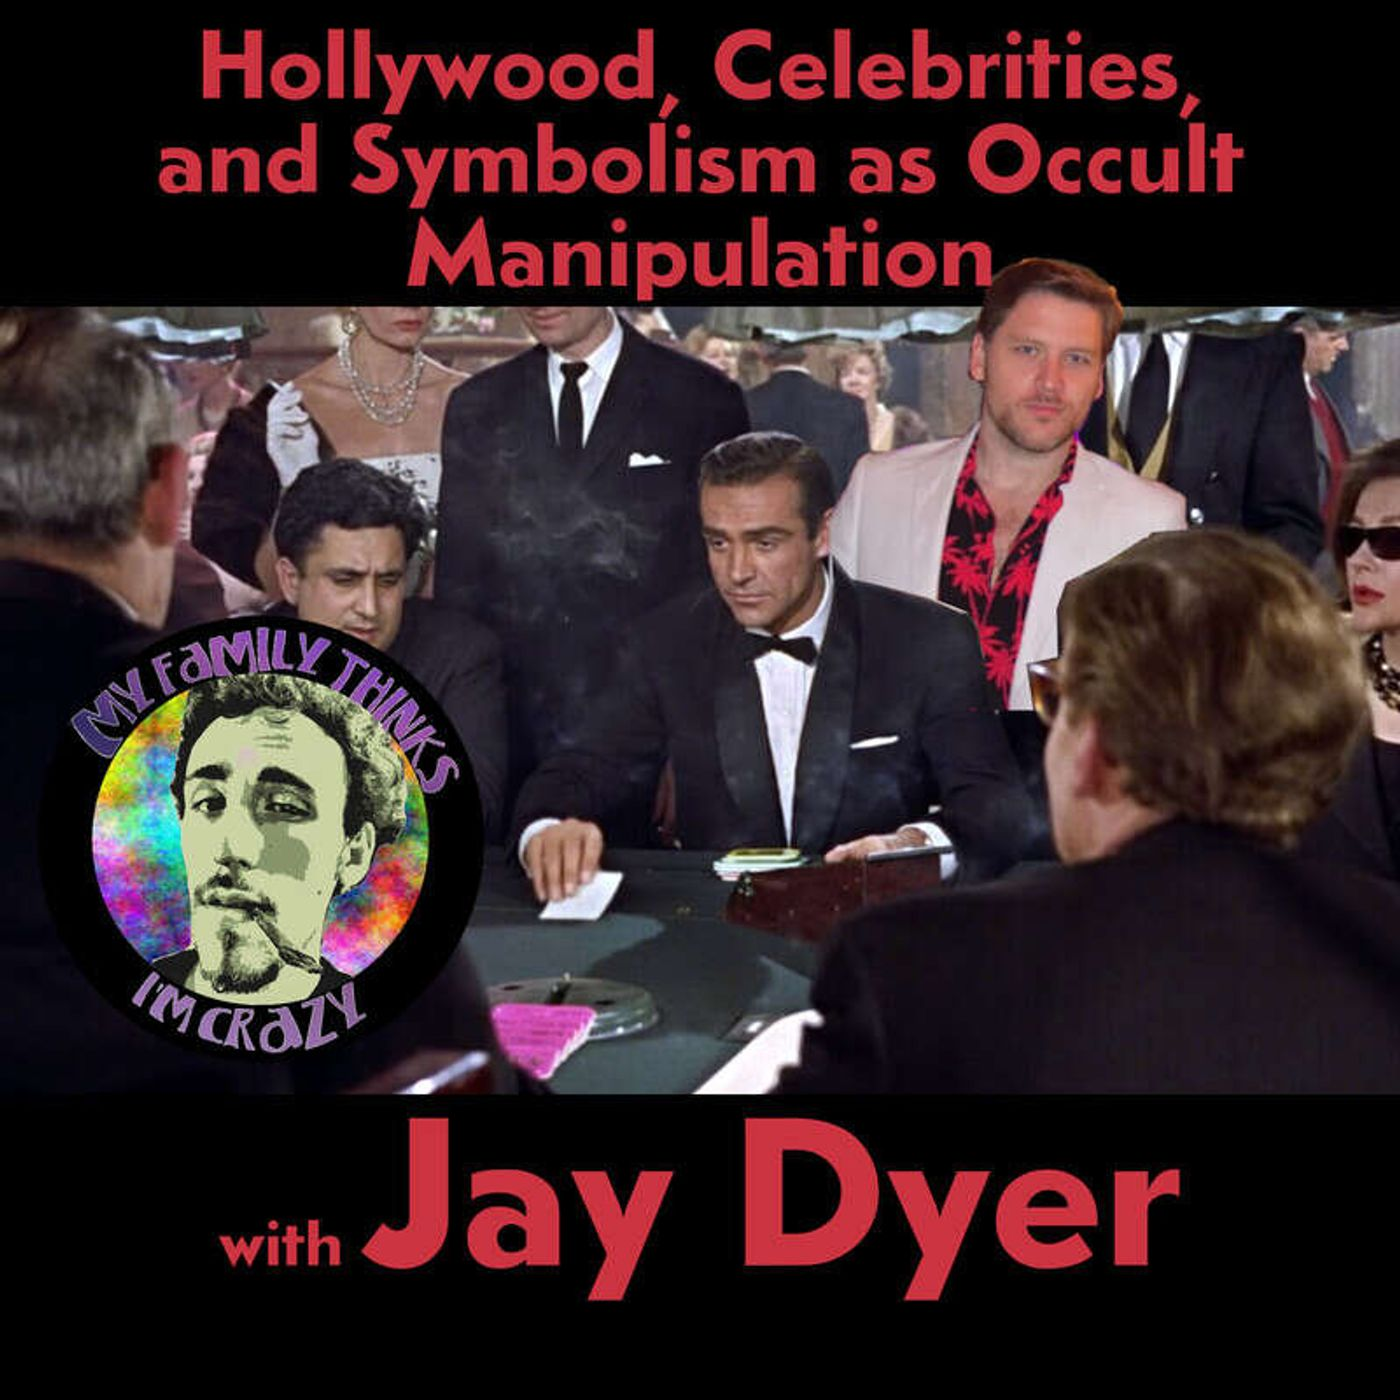 Hollywood, Celebrities and Symbolism as Occult Manipulation With Jay Dyer